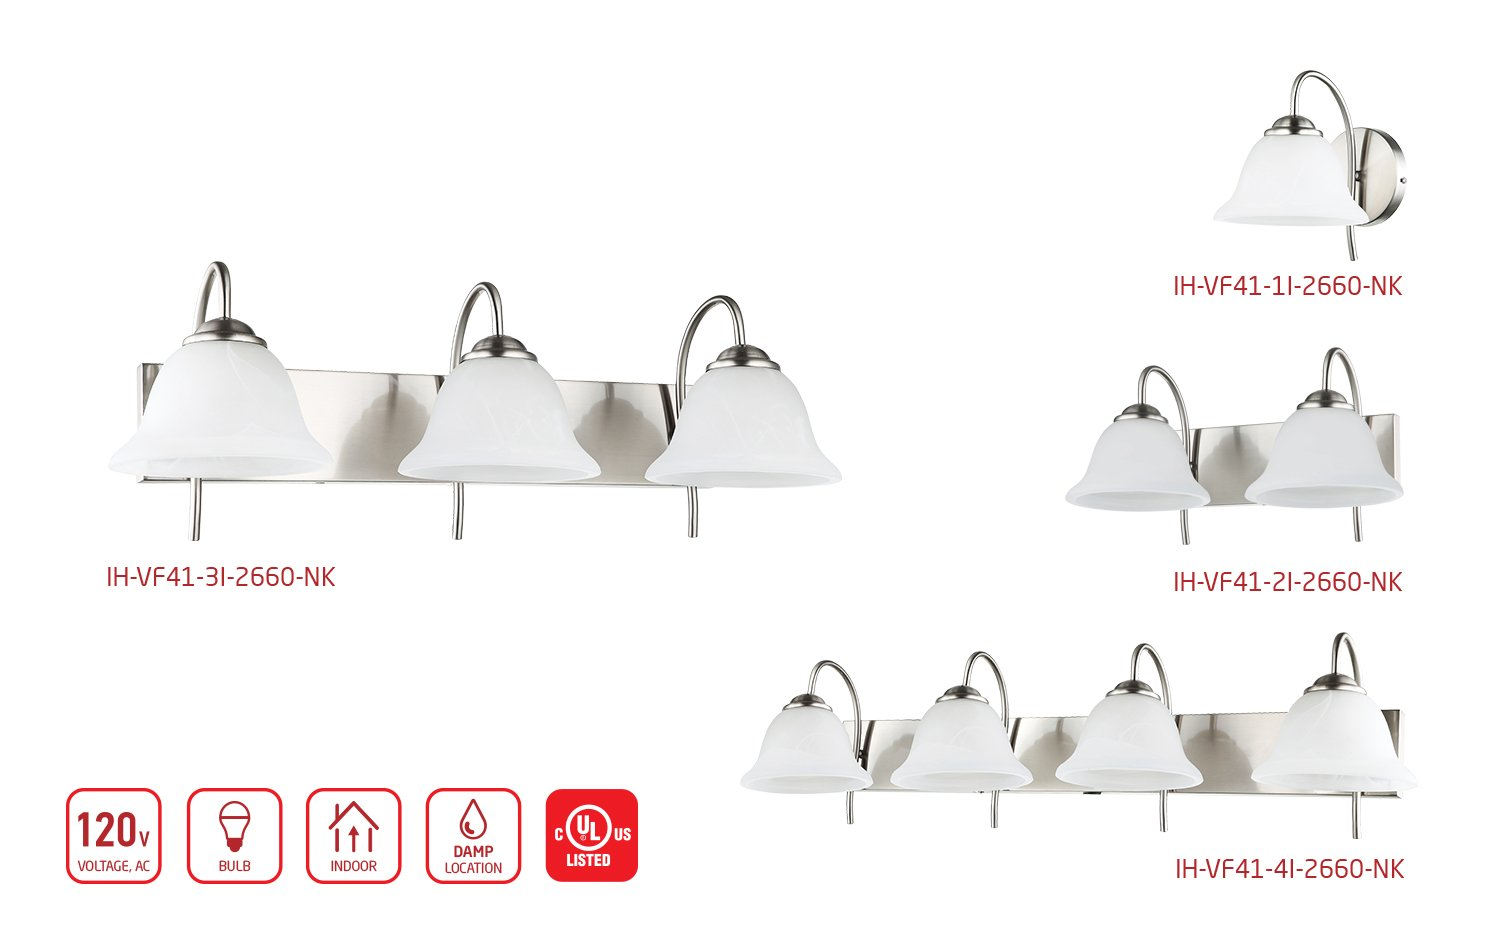 3-Light Bathroom VANITY and Kitchen Wall Sconce Fixture, Satin Nickel Finish with Alabaster Glass Bell Shades, E26 Medium Base For Three Bulbs, UL Listed by OSTWIN (Image #4)